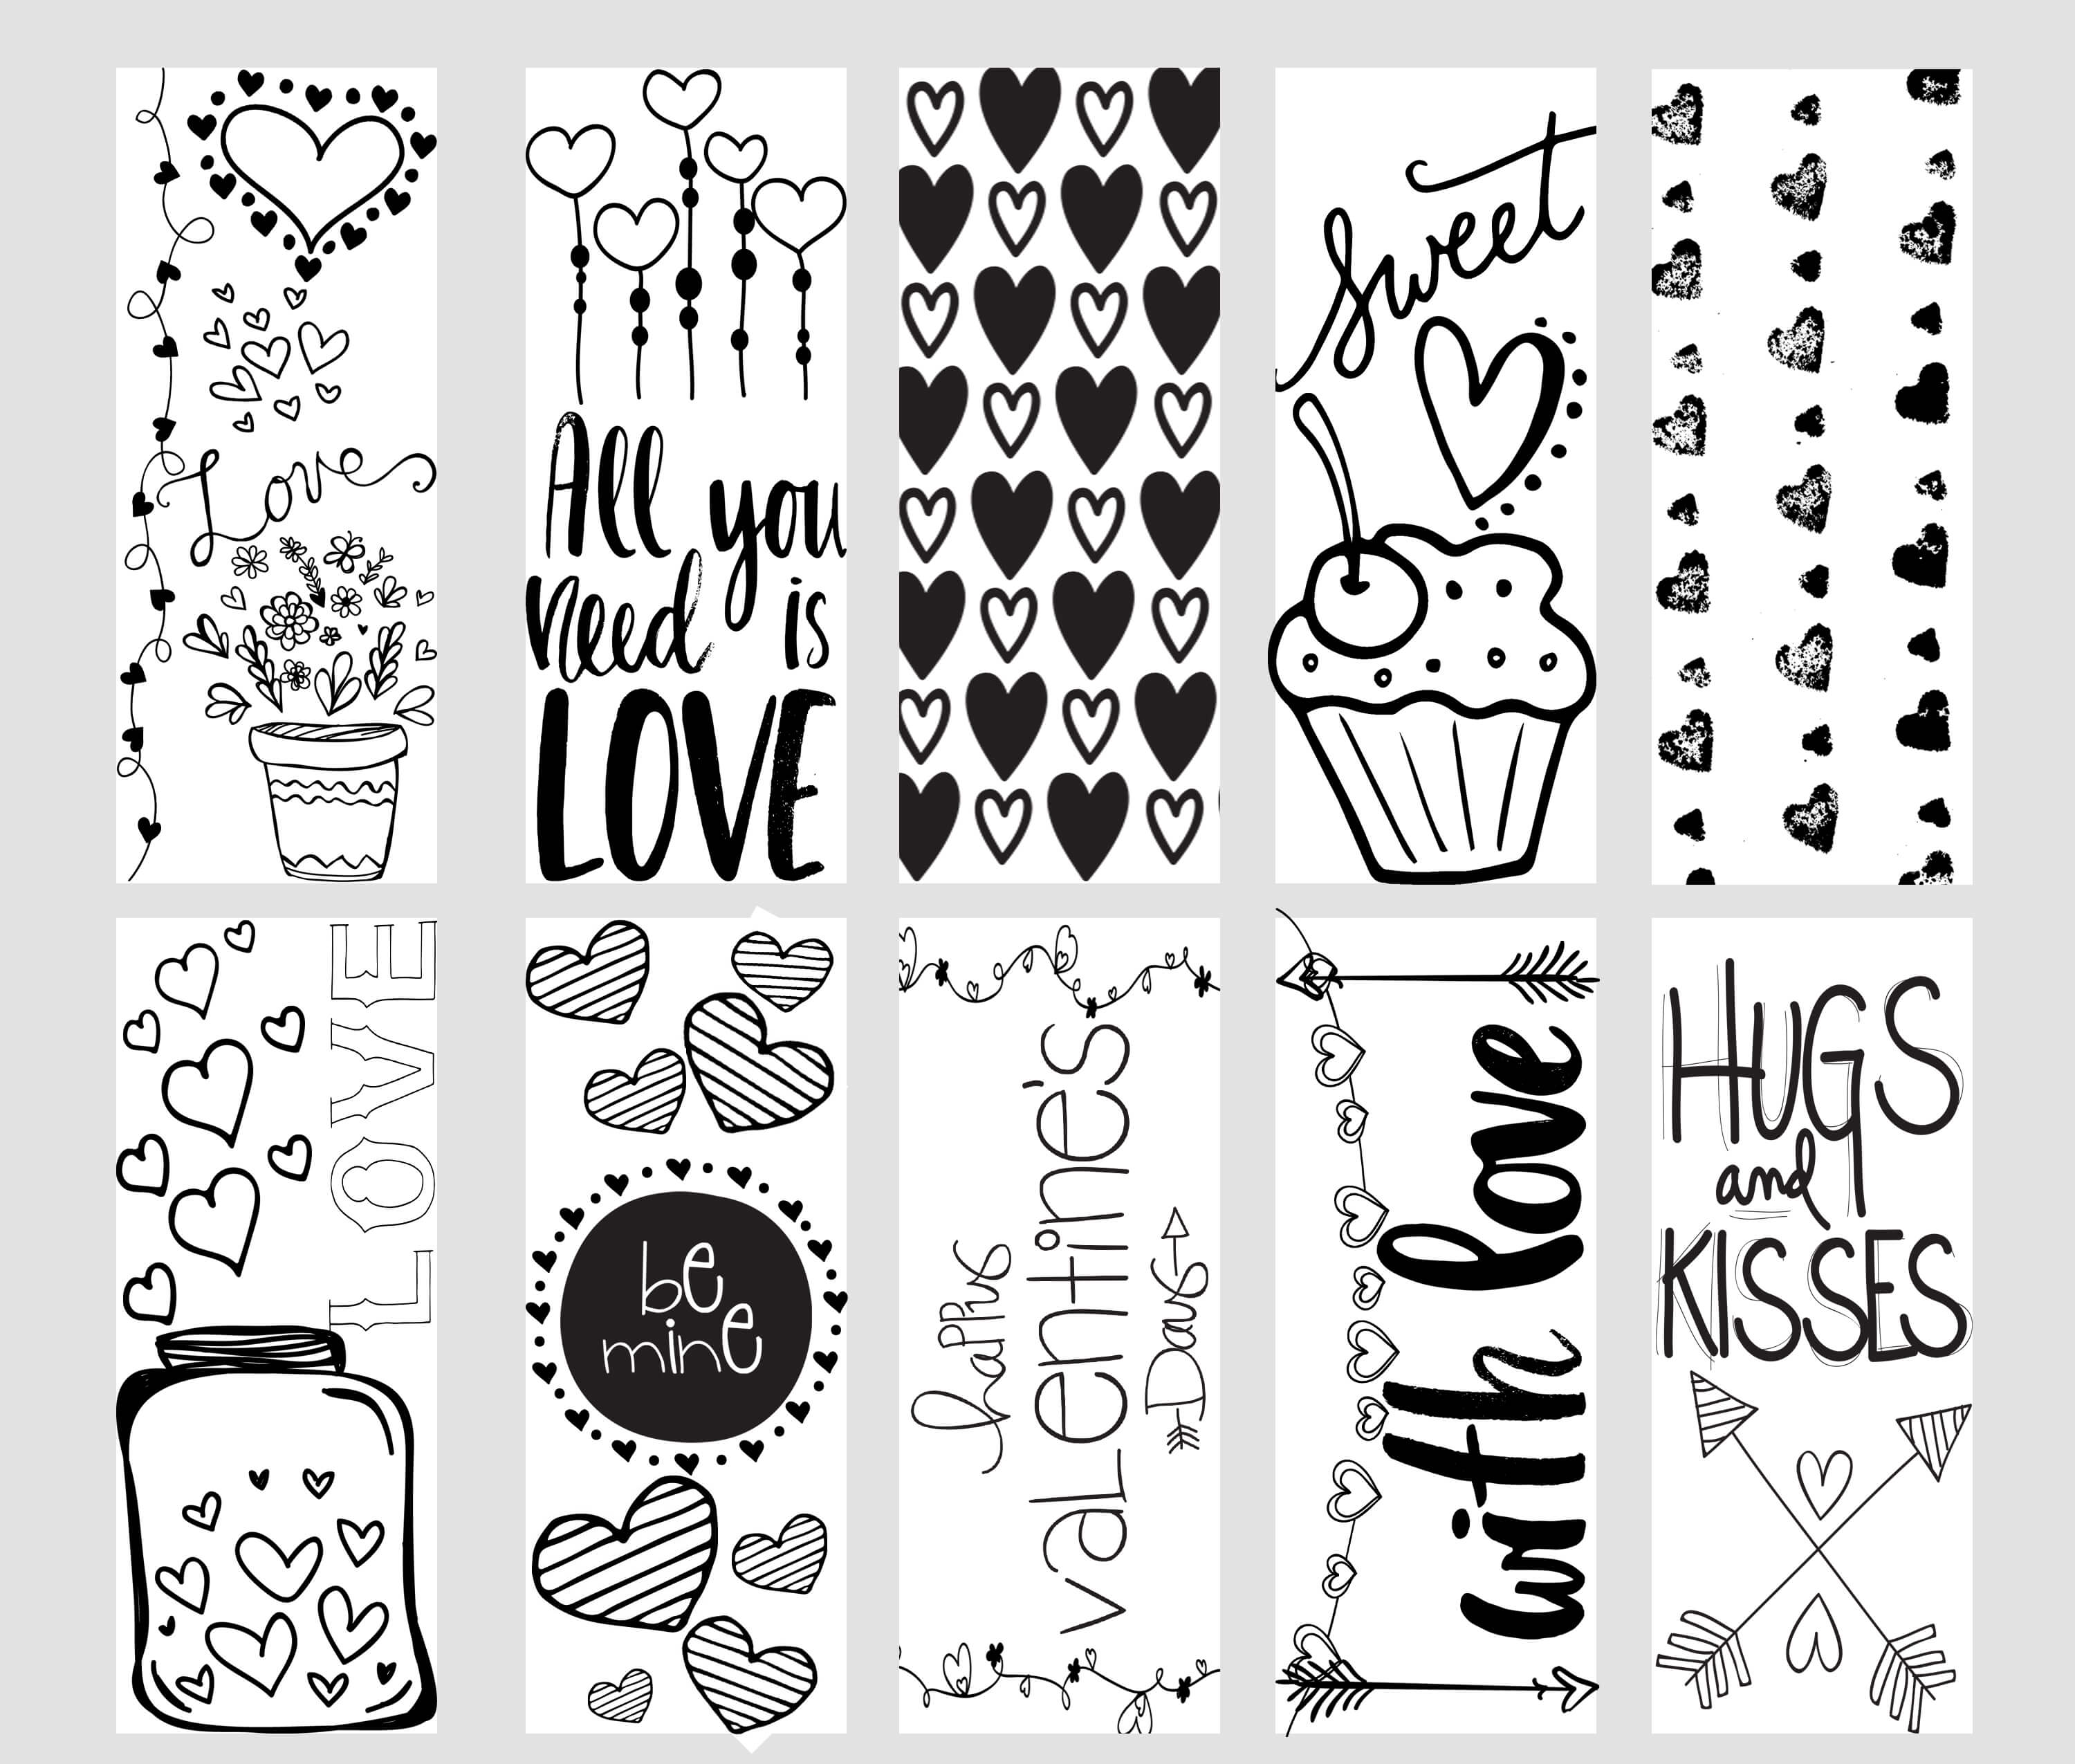 bookmark coloring pages Valentine Printable Coloring Page Bookmarks   Kleinworth & Co bookmark coloring pages